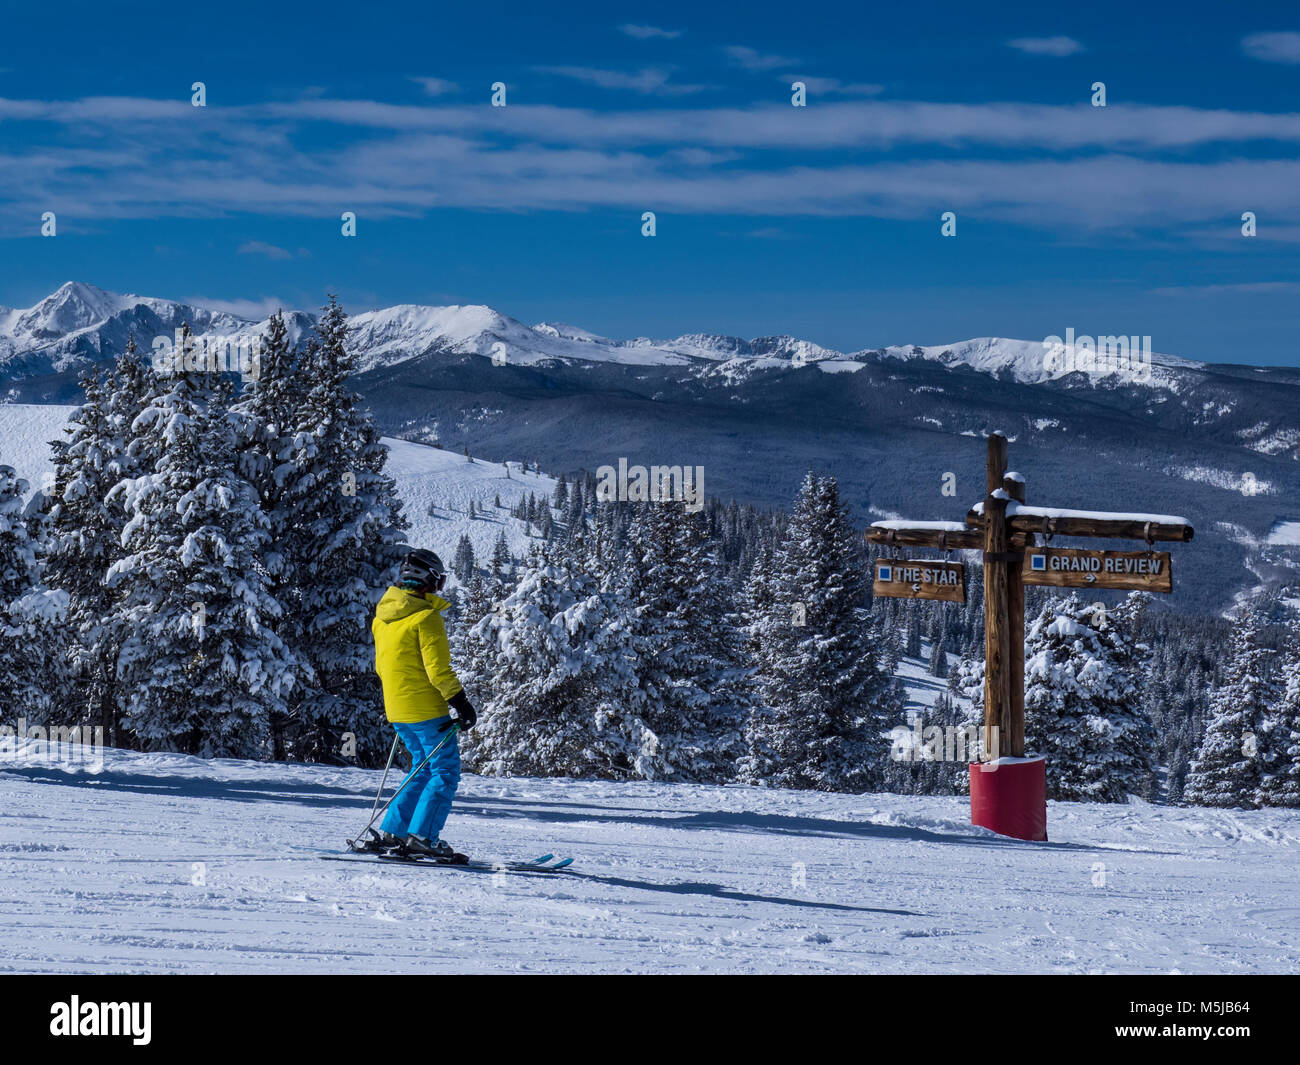 Junction of the Star and Grand Review ski trails, winter, Blue Sky Basin, Vail Ski Resort, Vail, Colorado. - Stock Image